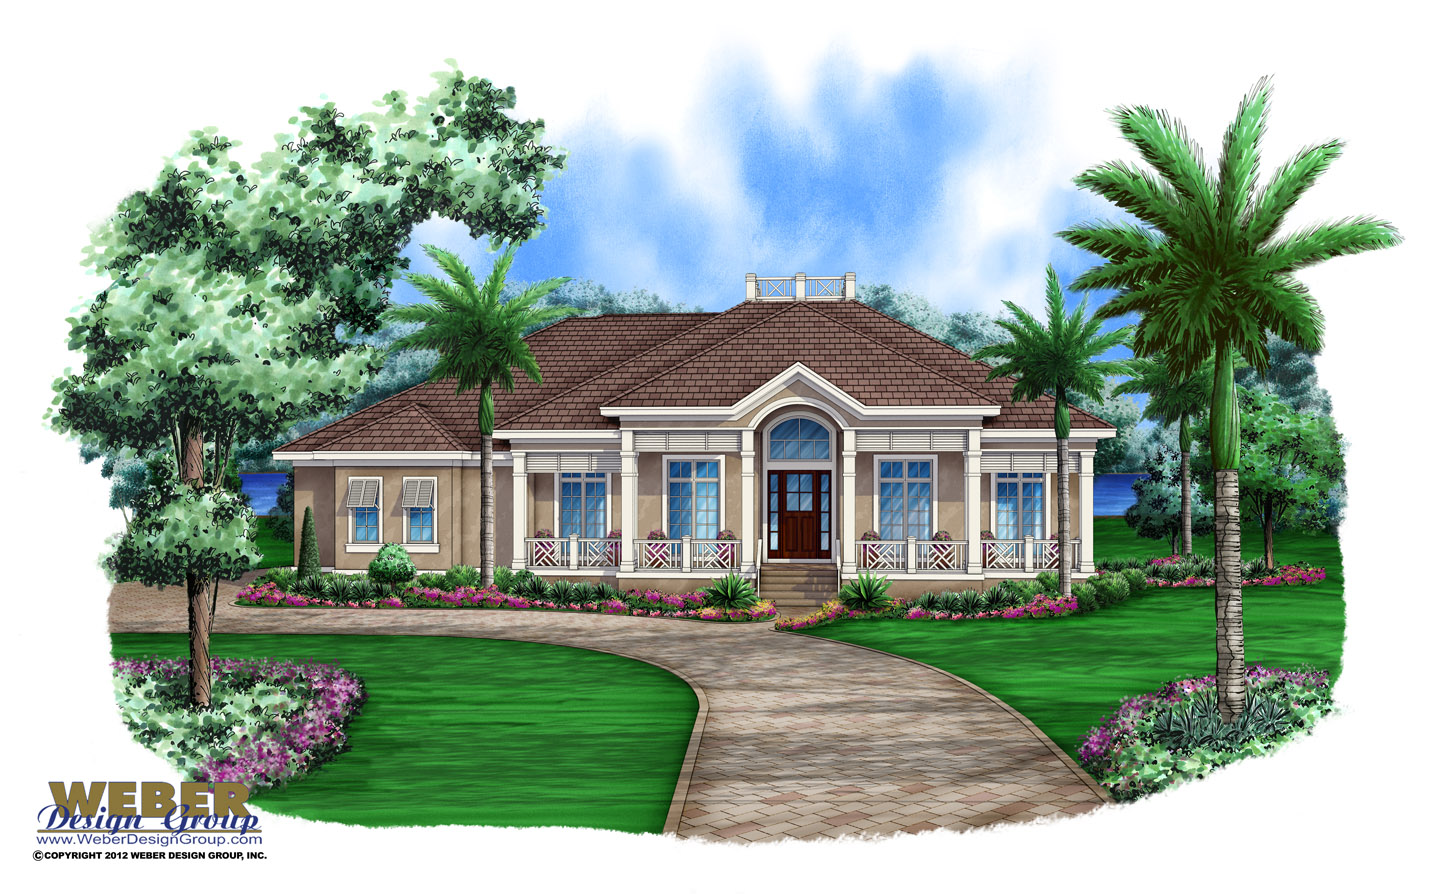 Olde florida plan aruba house plan weber design group for Weber design